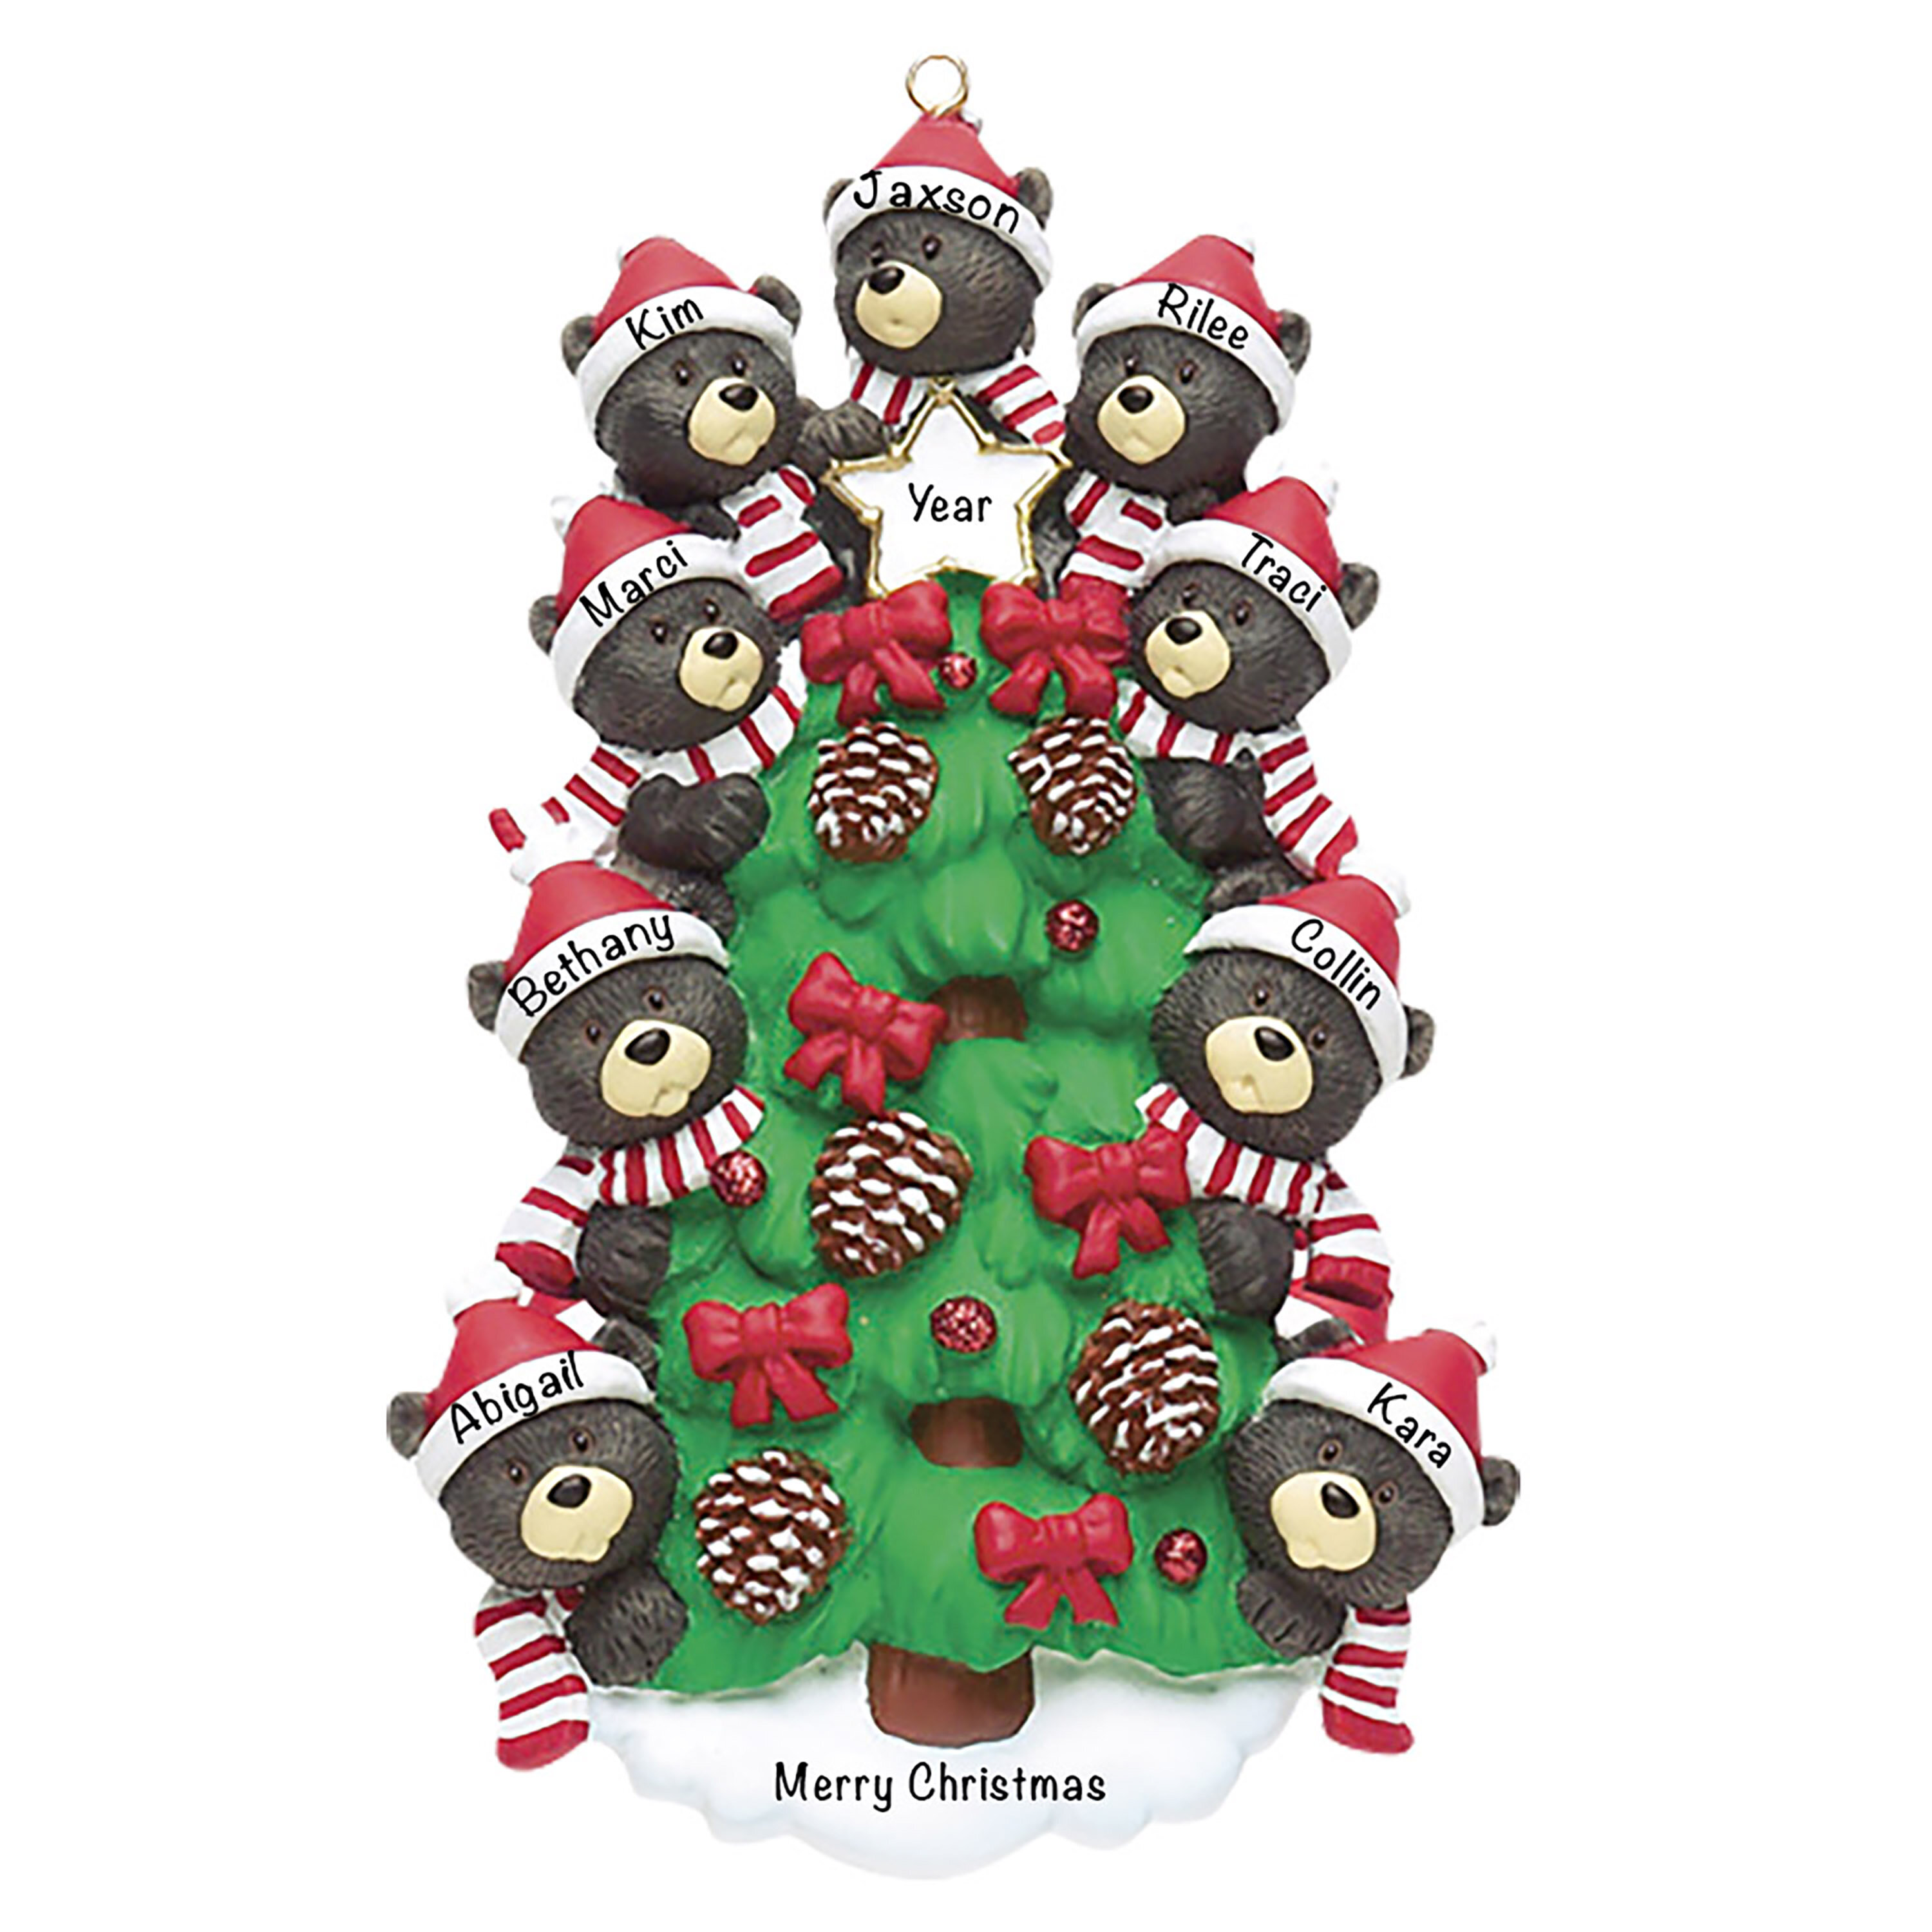 The Holiday Aisle Bear Tree Family Hanging Figurine Ornament Wayfair